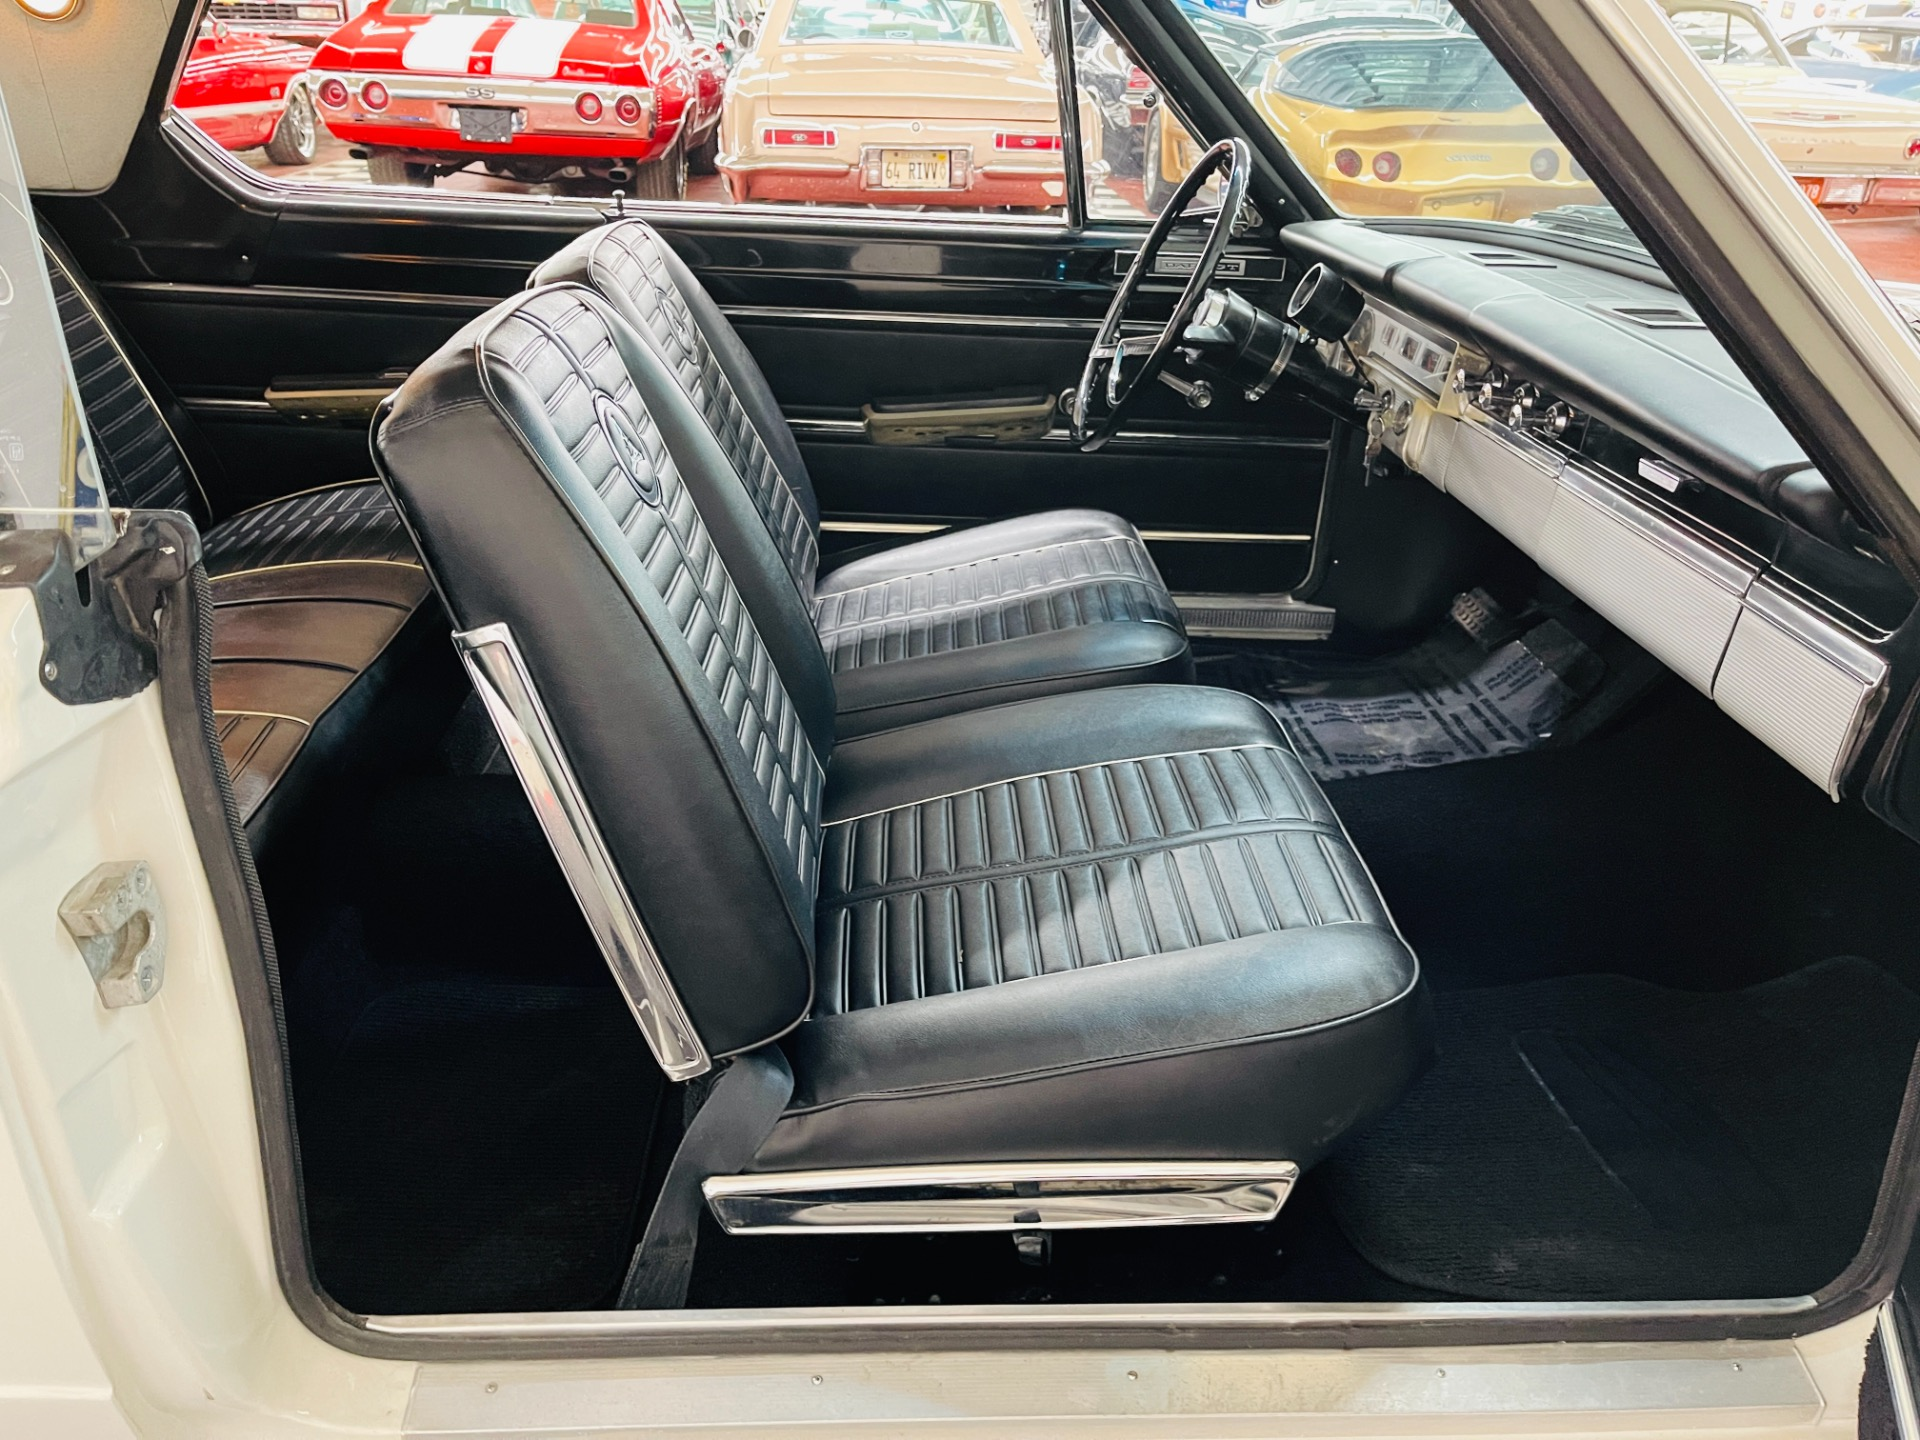 Used 1964 Dodge Dart - GT 273 V8 ENGINE - VERY CLEAN - DRIVES GREAT - SEE VIDEO - | Mundelein, IL